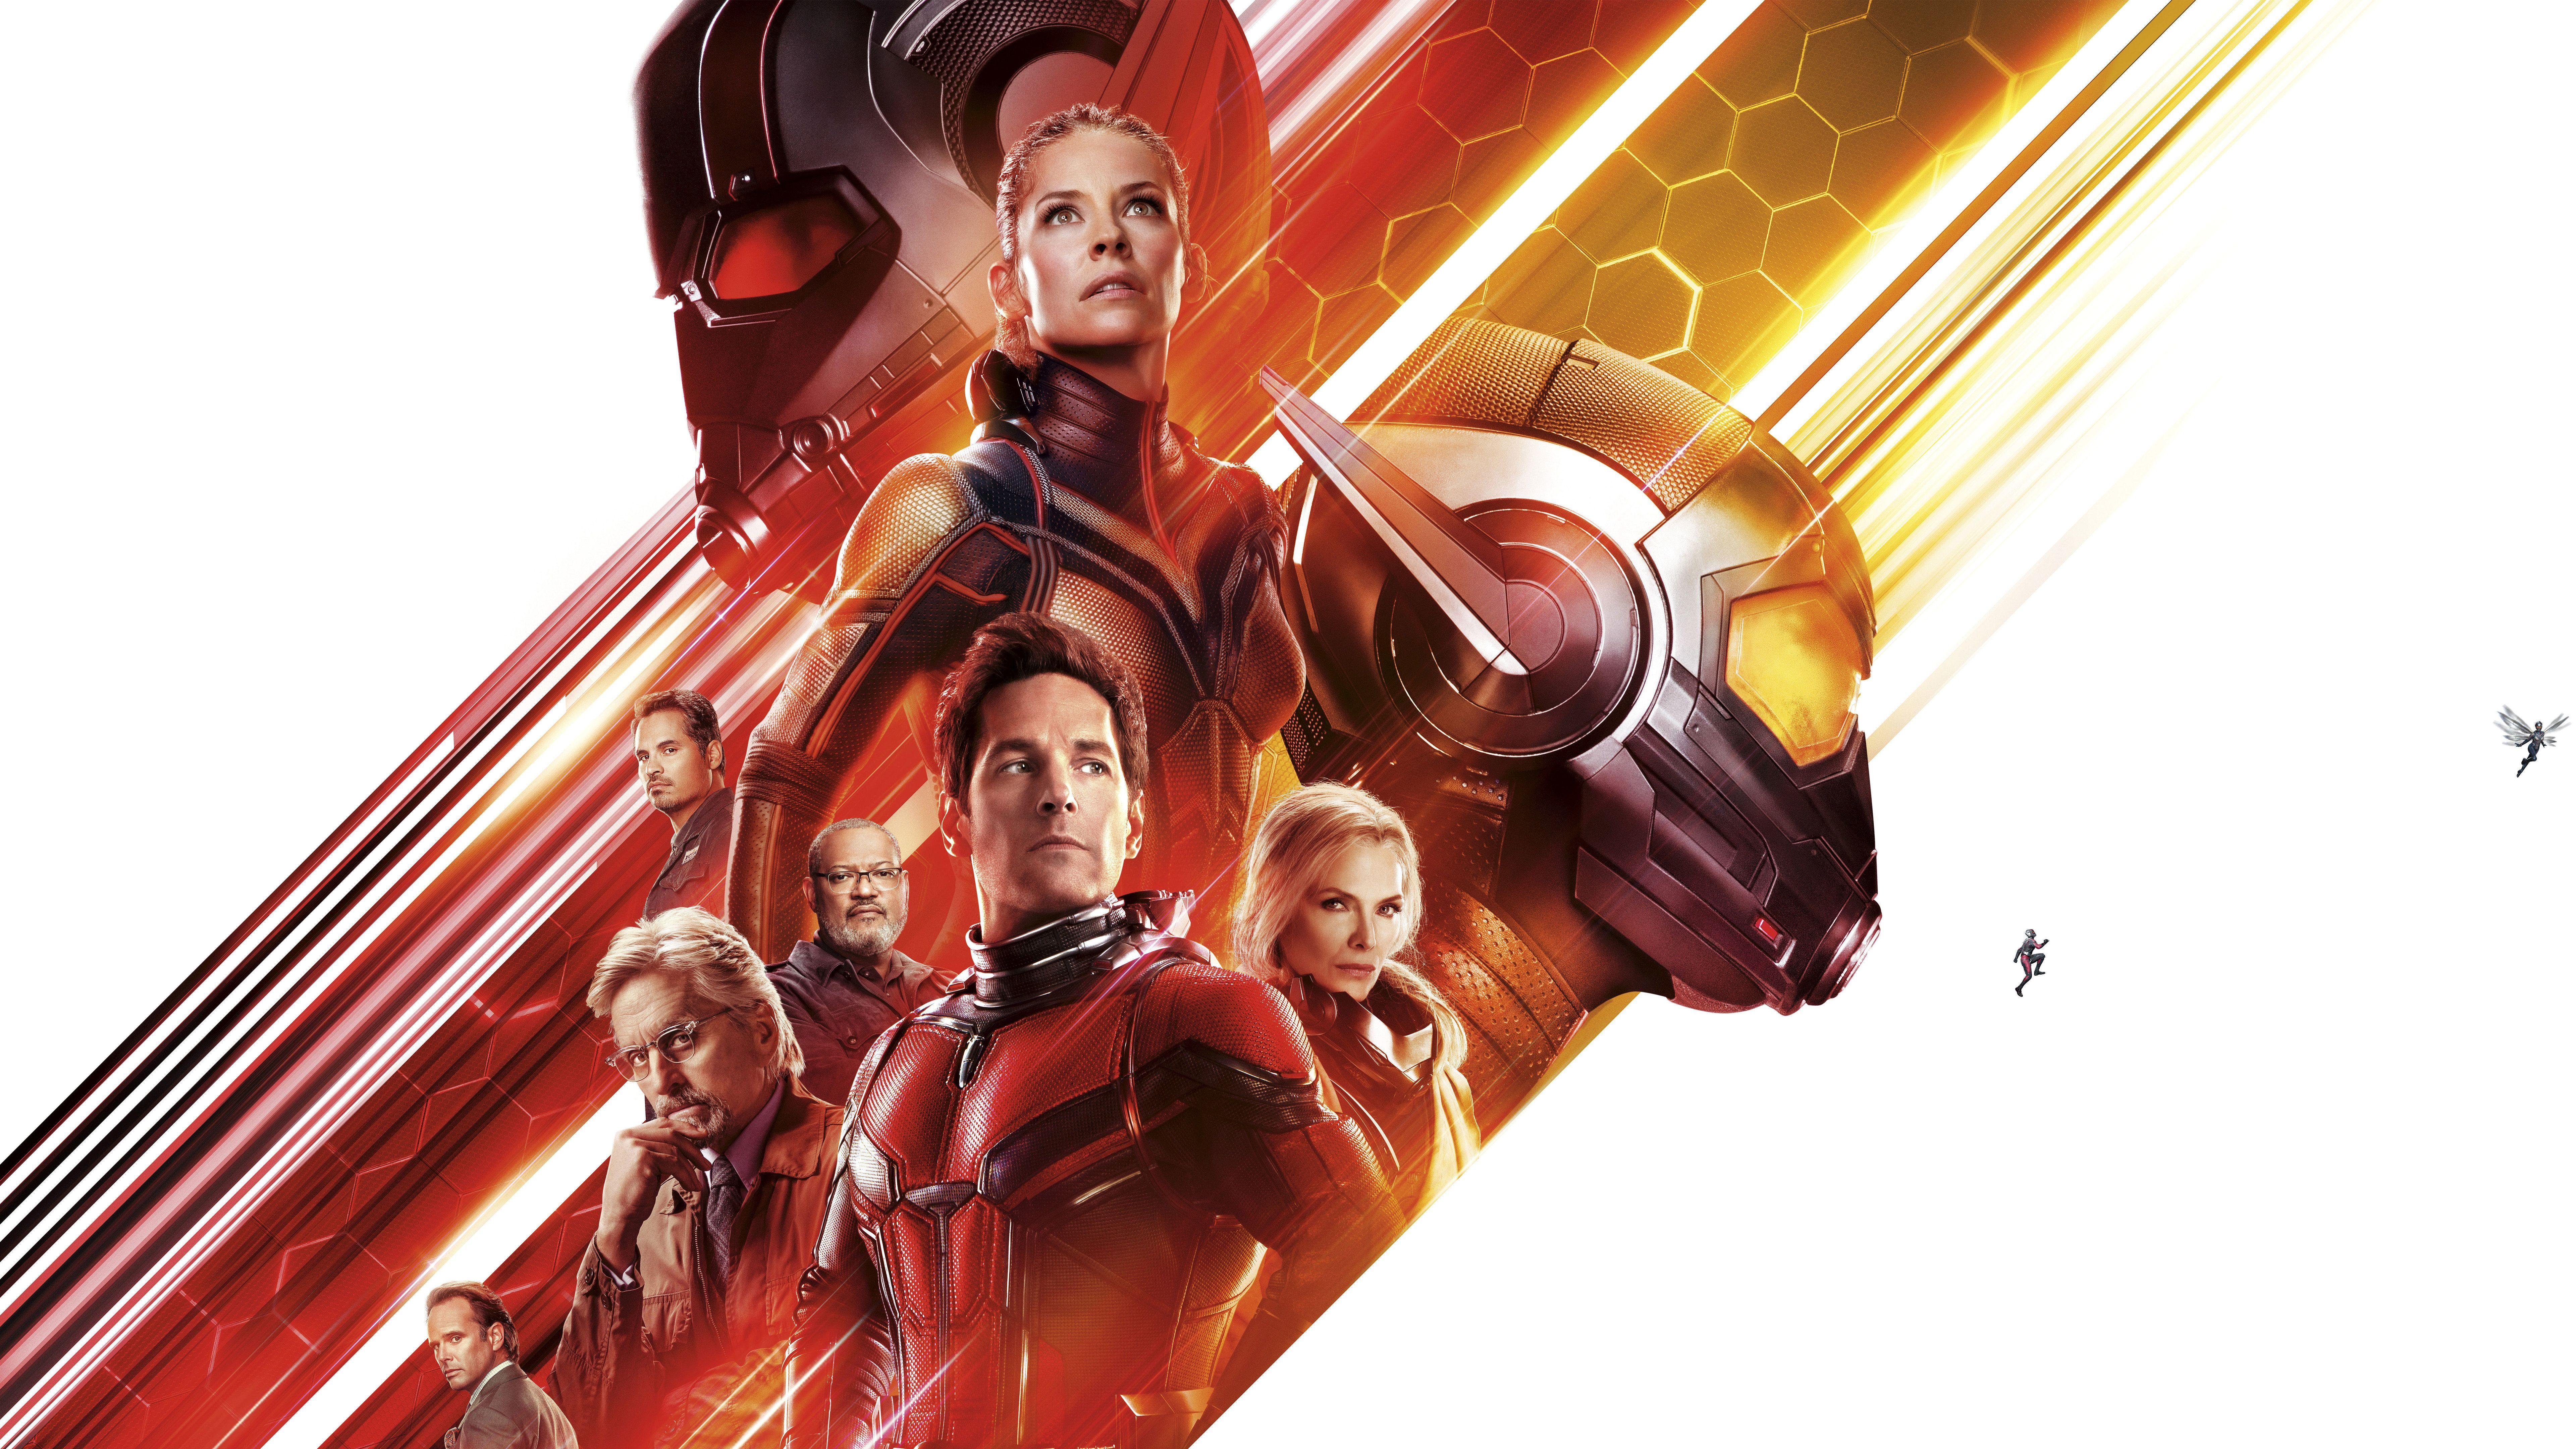 7680x4320 Ant Man And The Wasp Movie 10k 8k HD 4k Wallpapers, Image